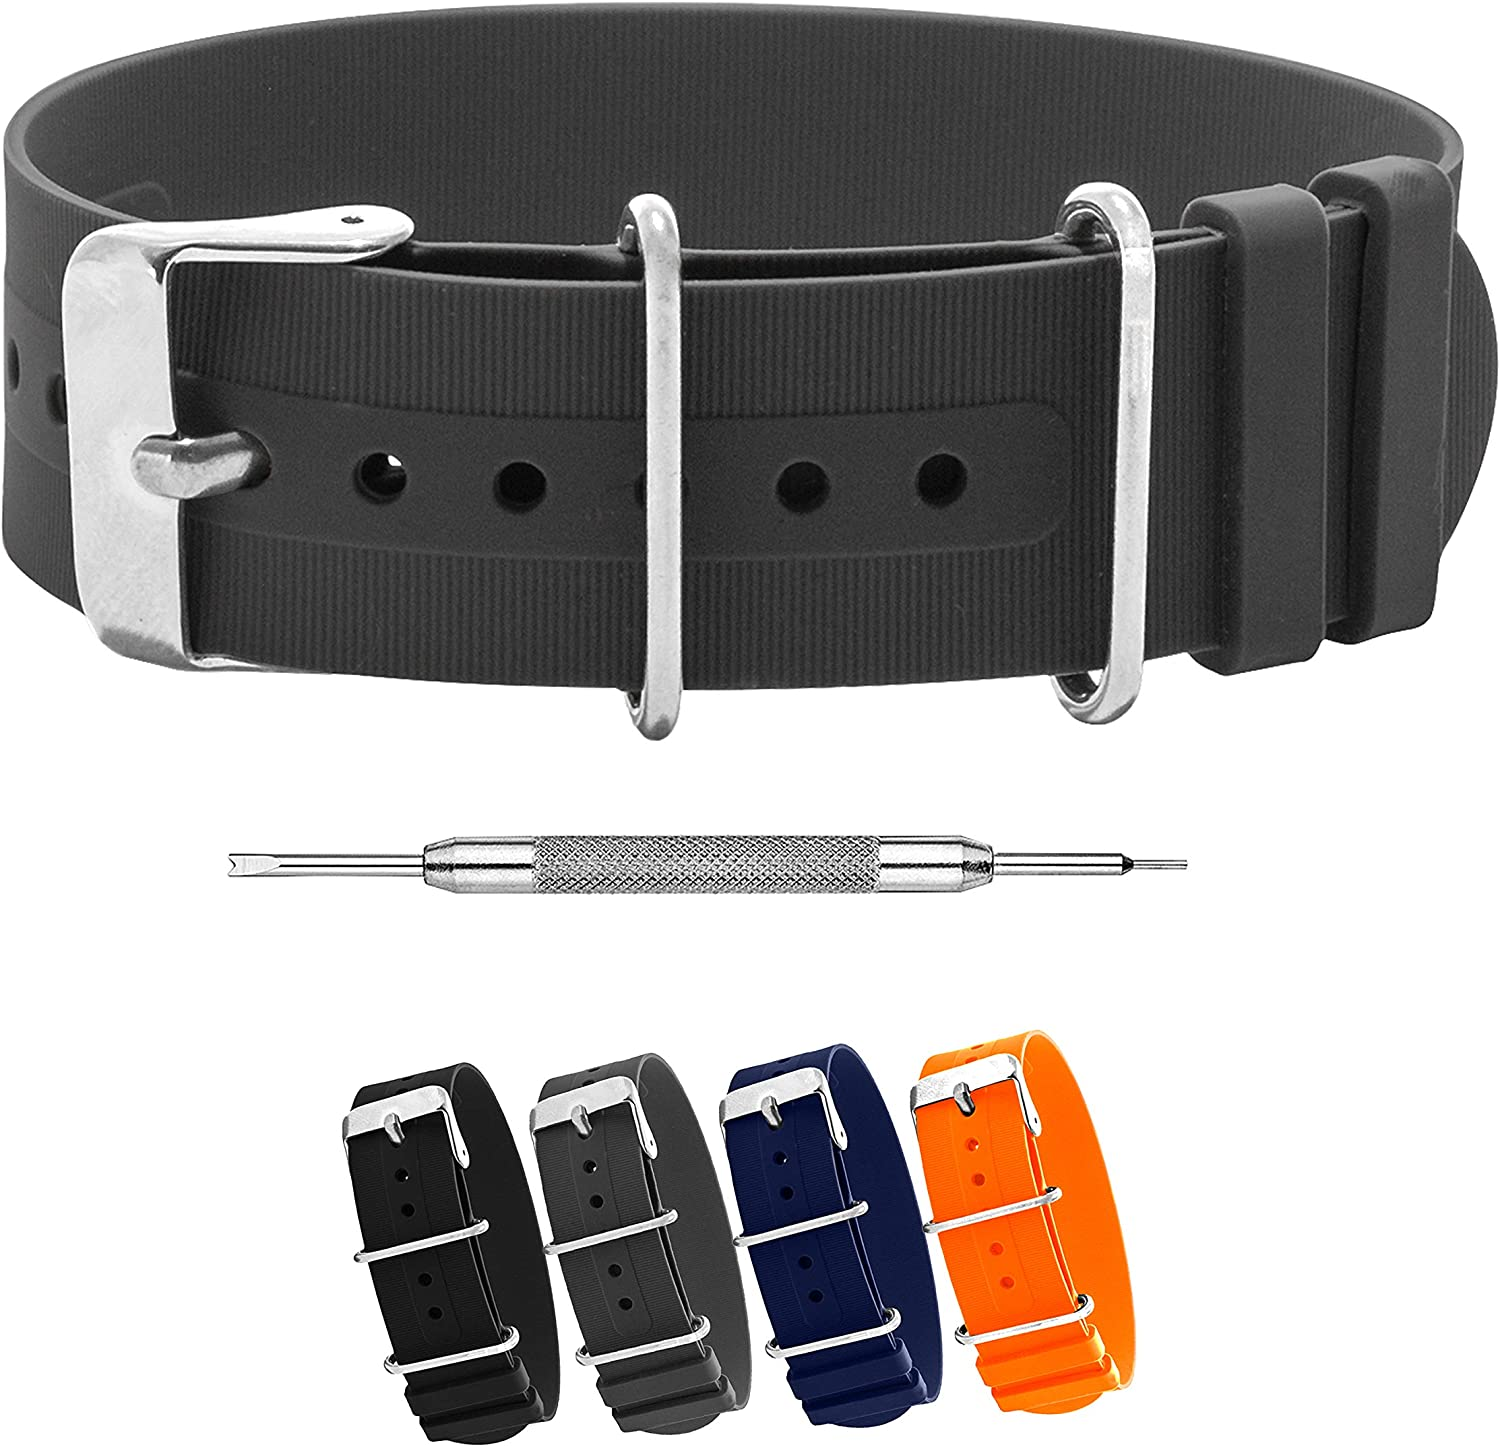 Benchmark Basics Silicone Watch Band - Single Pass Rubber Strap - 18mm, 20mm & 22mm - 4 Colors